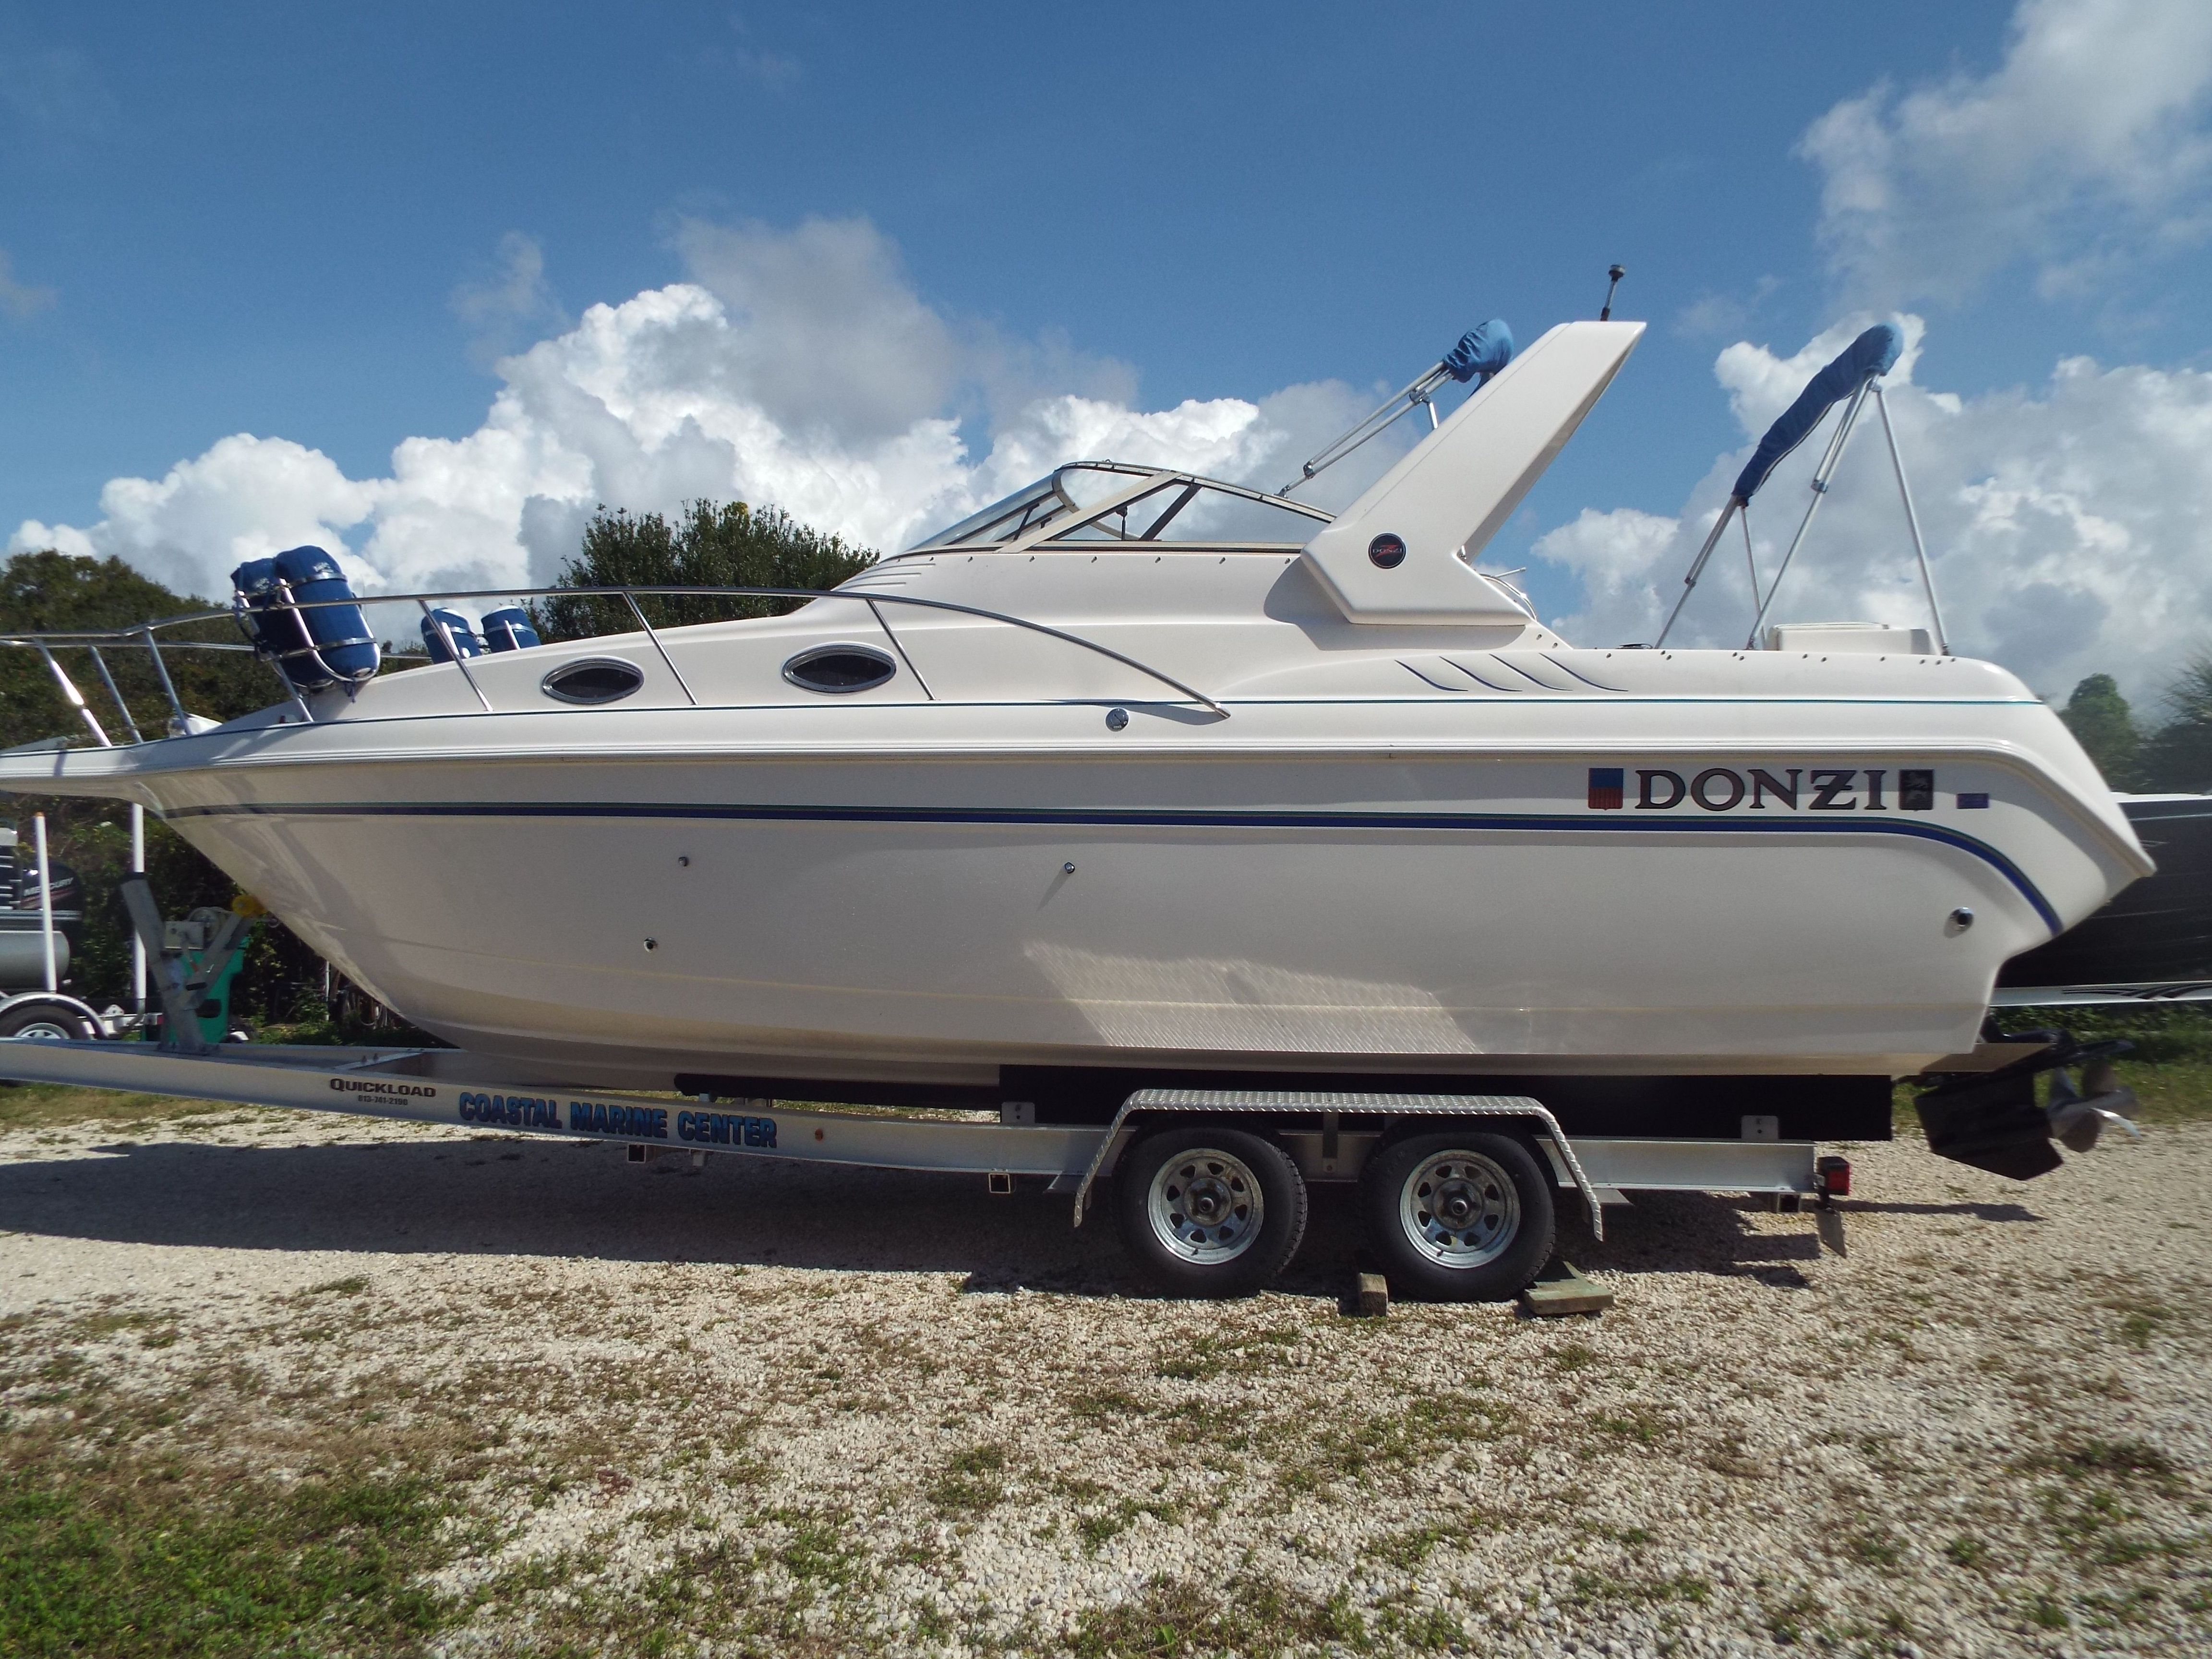 Donzi boats for sale in Florida - Boat Trader